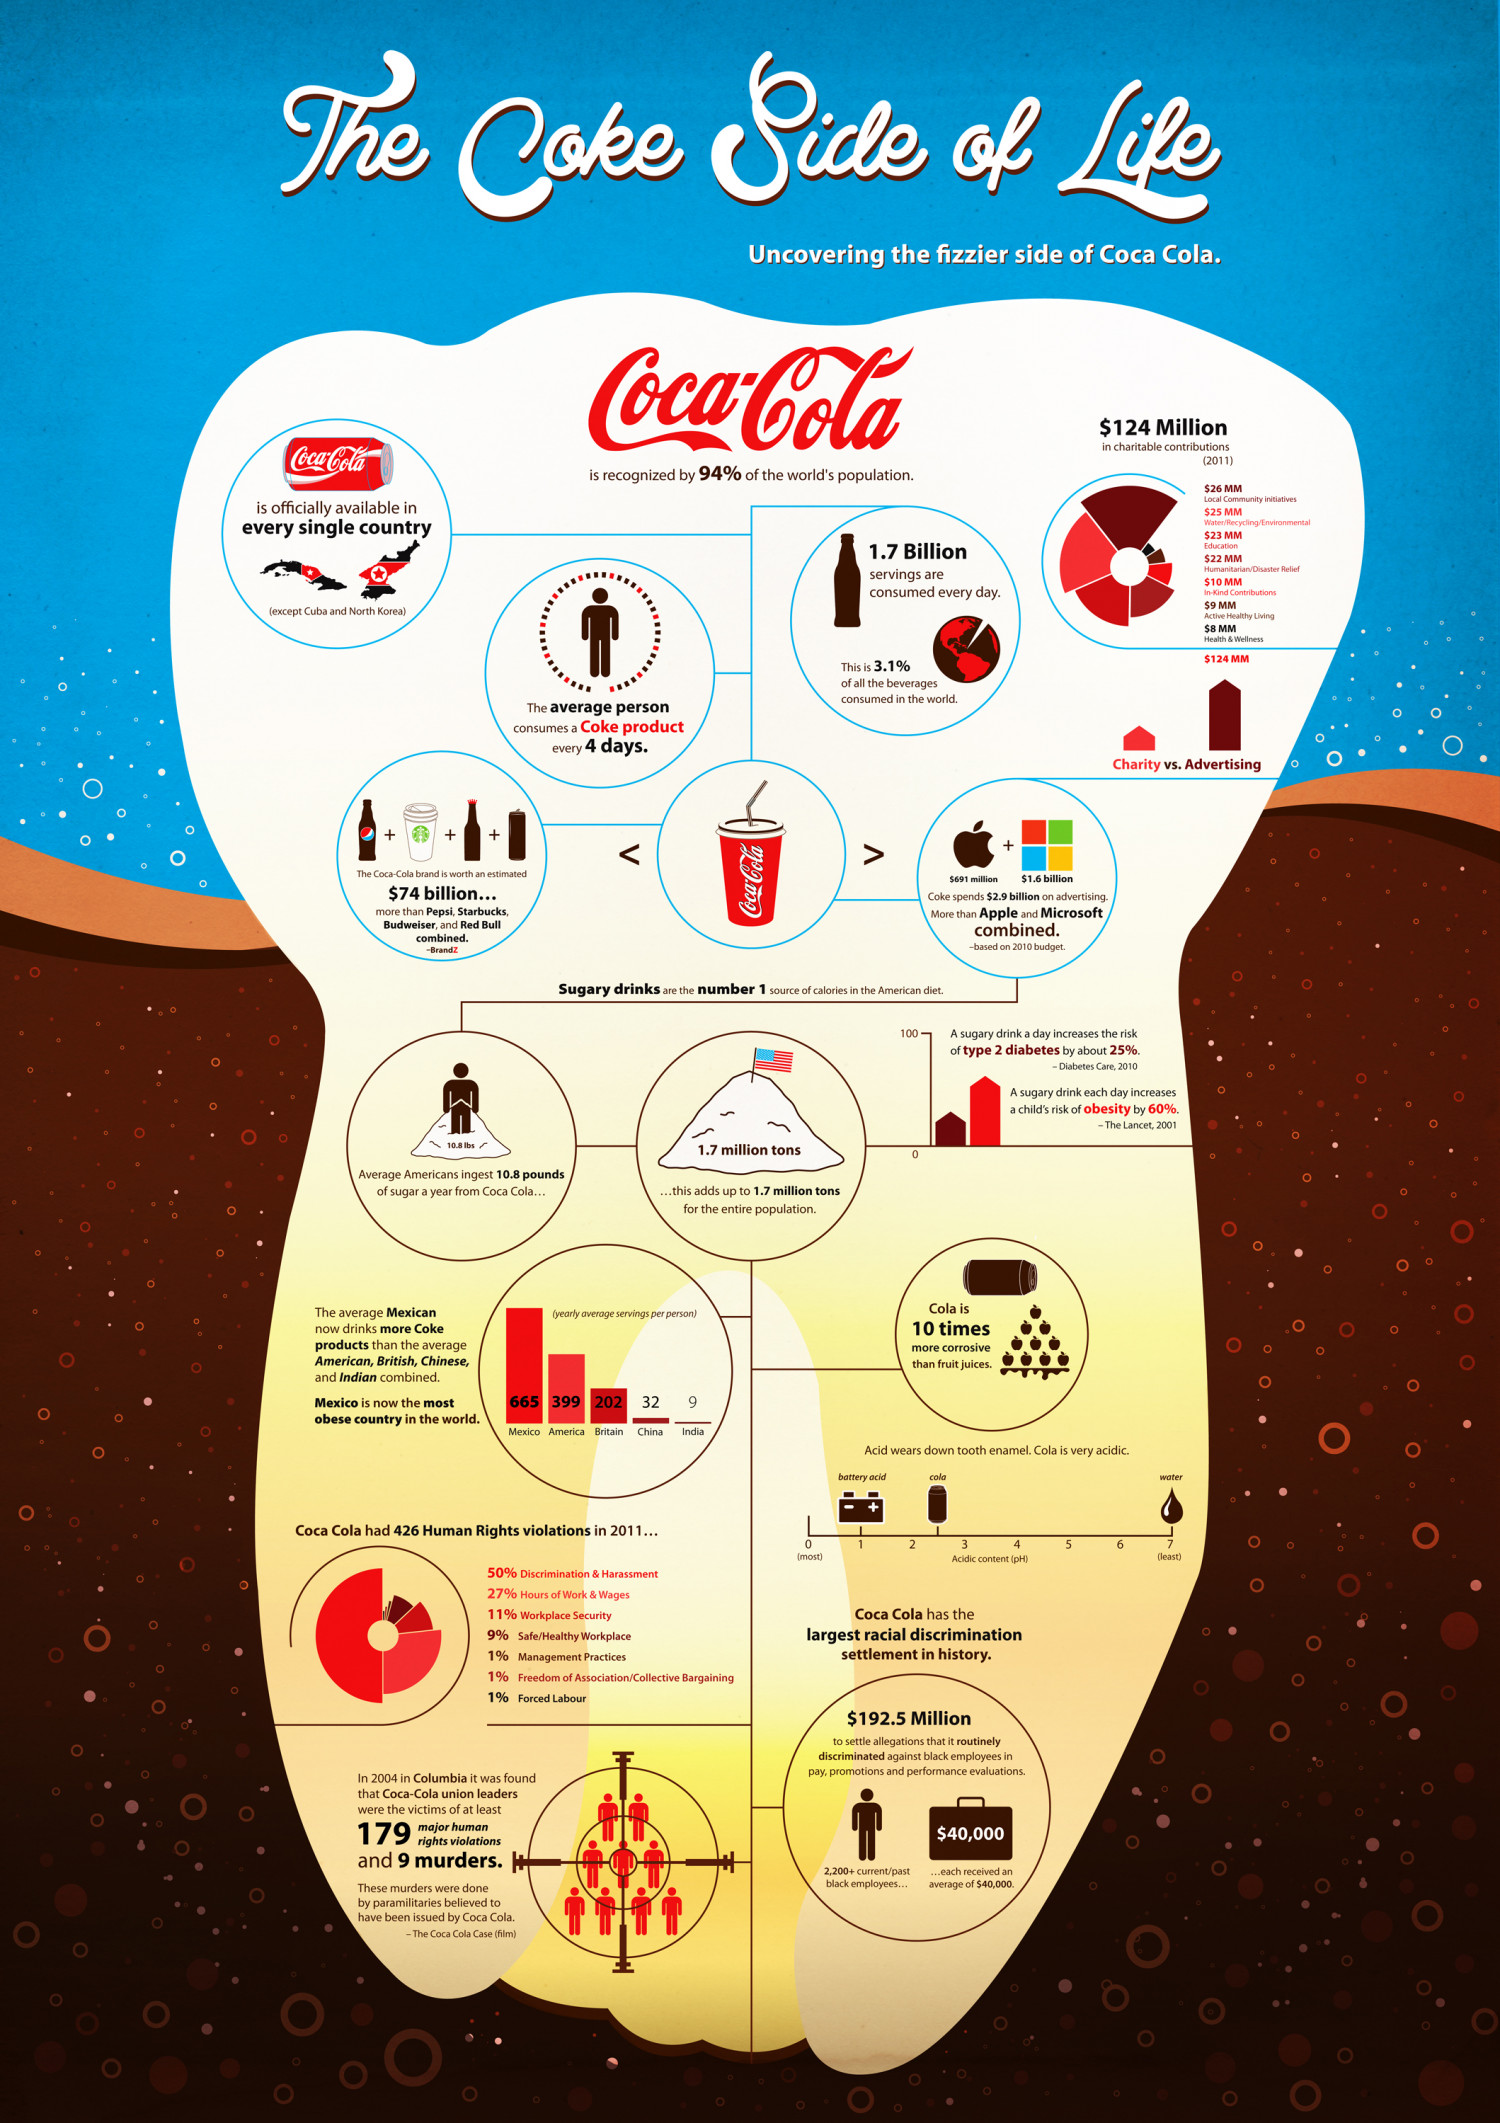 The Coke Side of Life Infographic